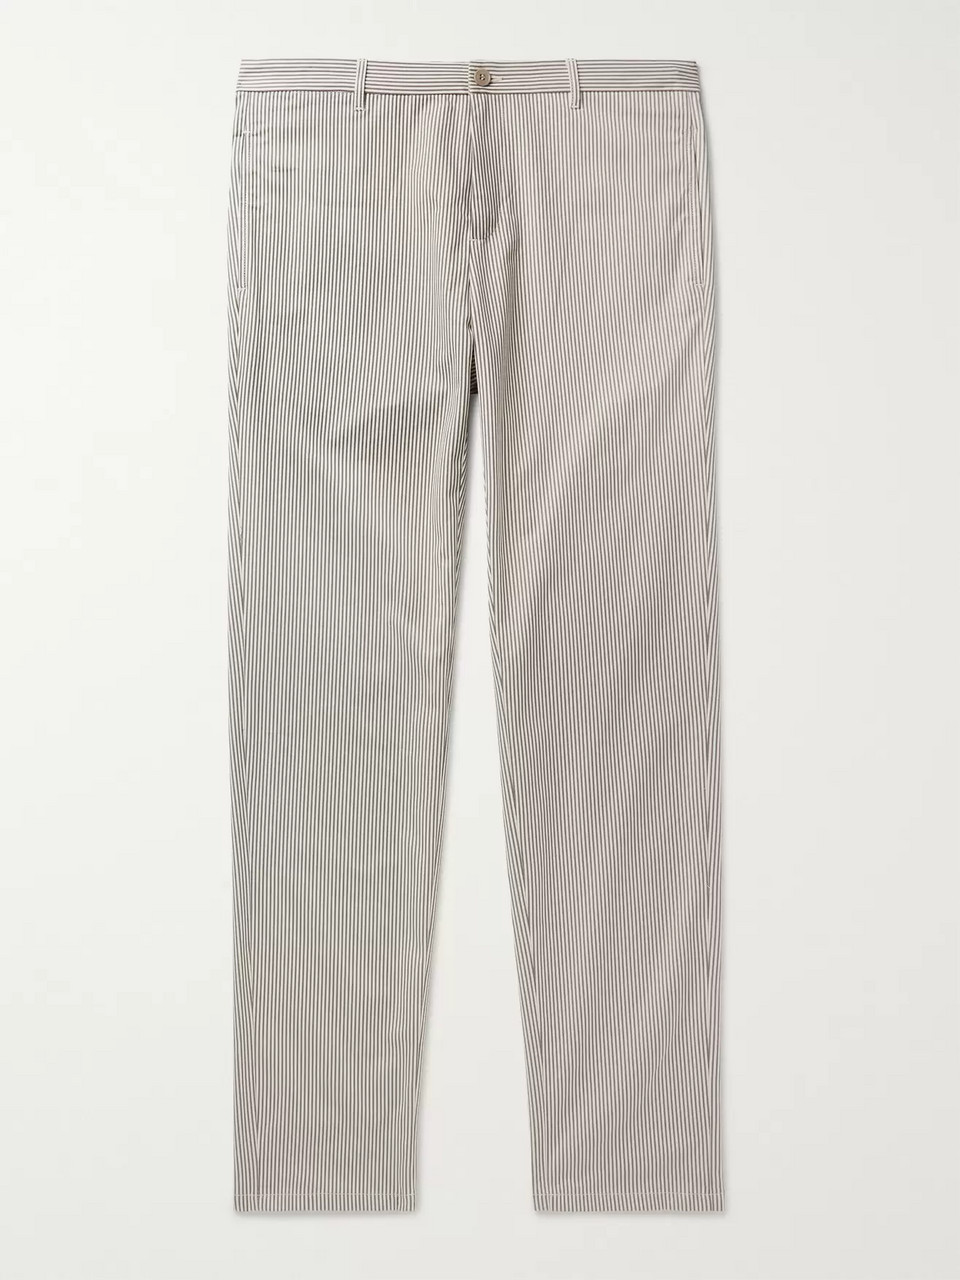 A.P.C. Pat Striped Cotton-Blend Gabardine Chinos